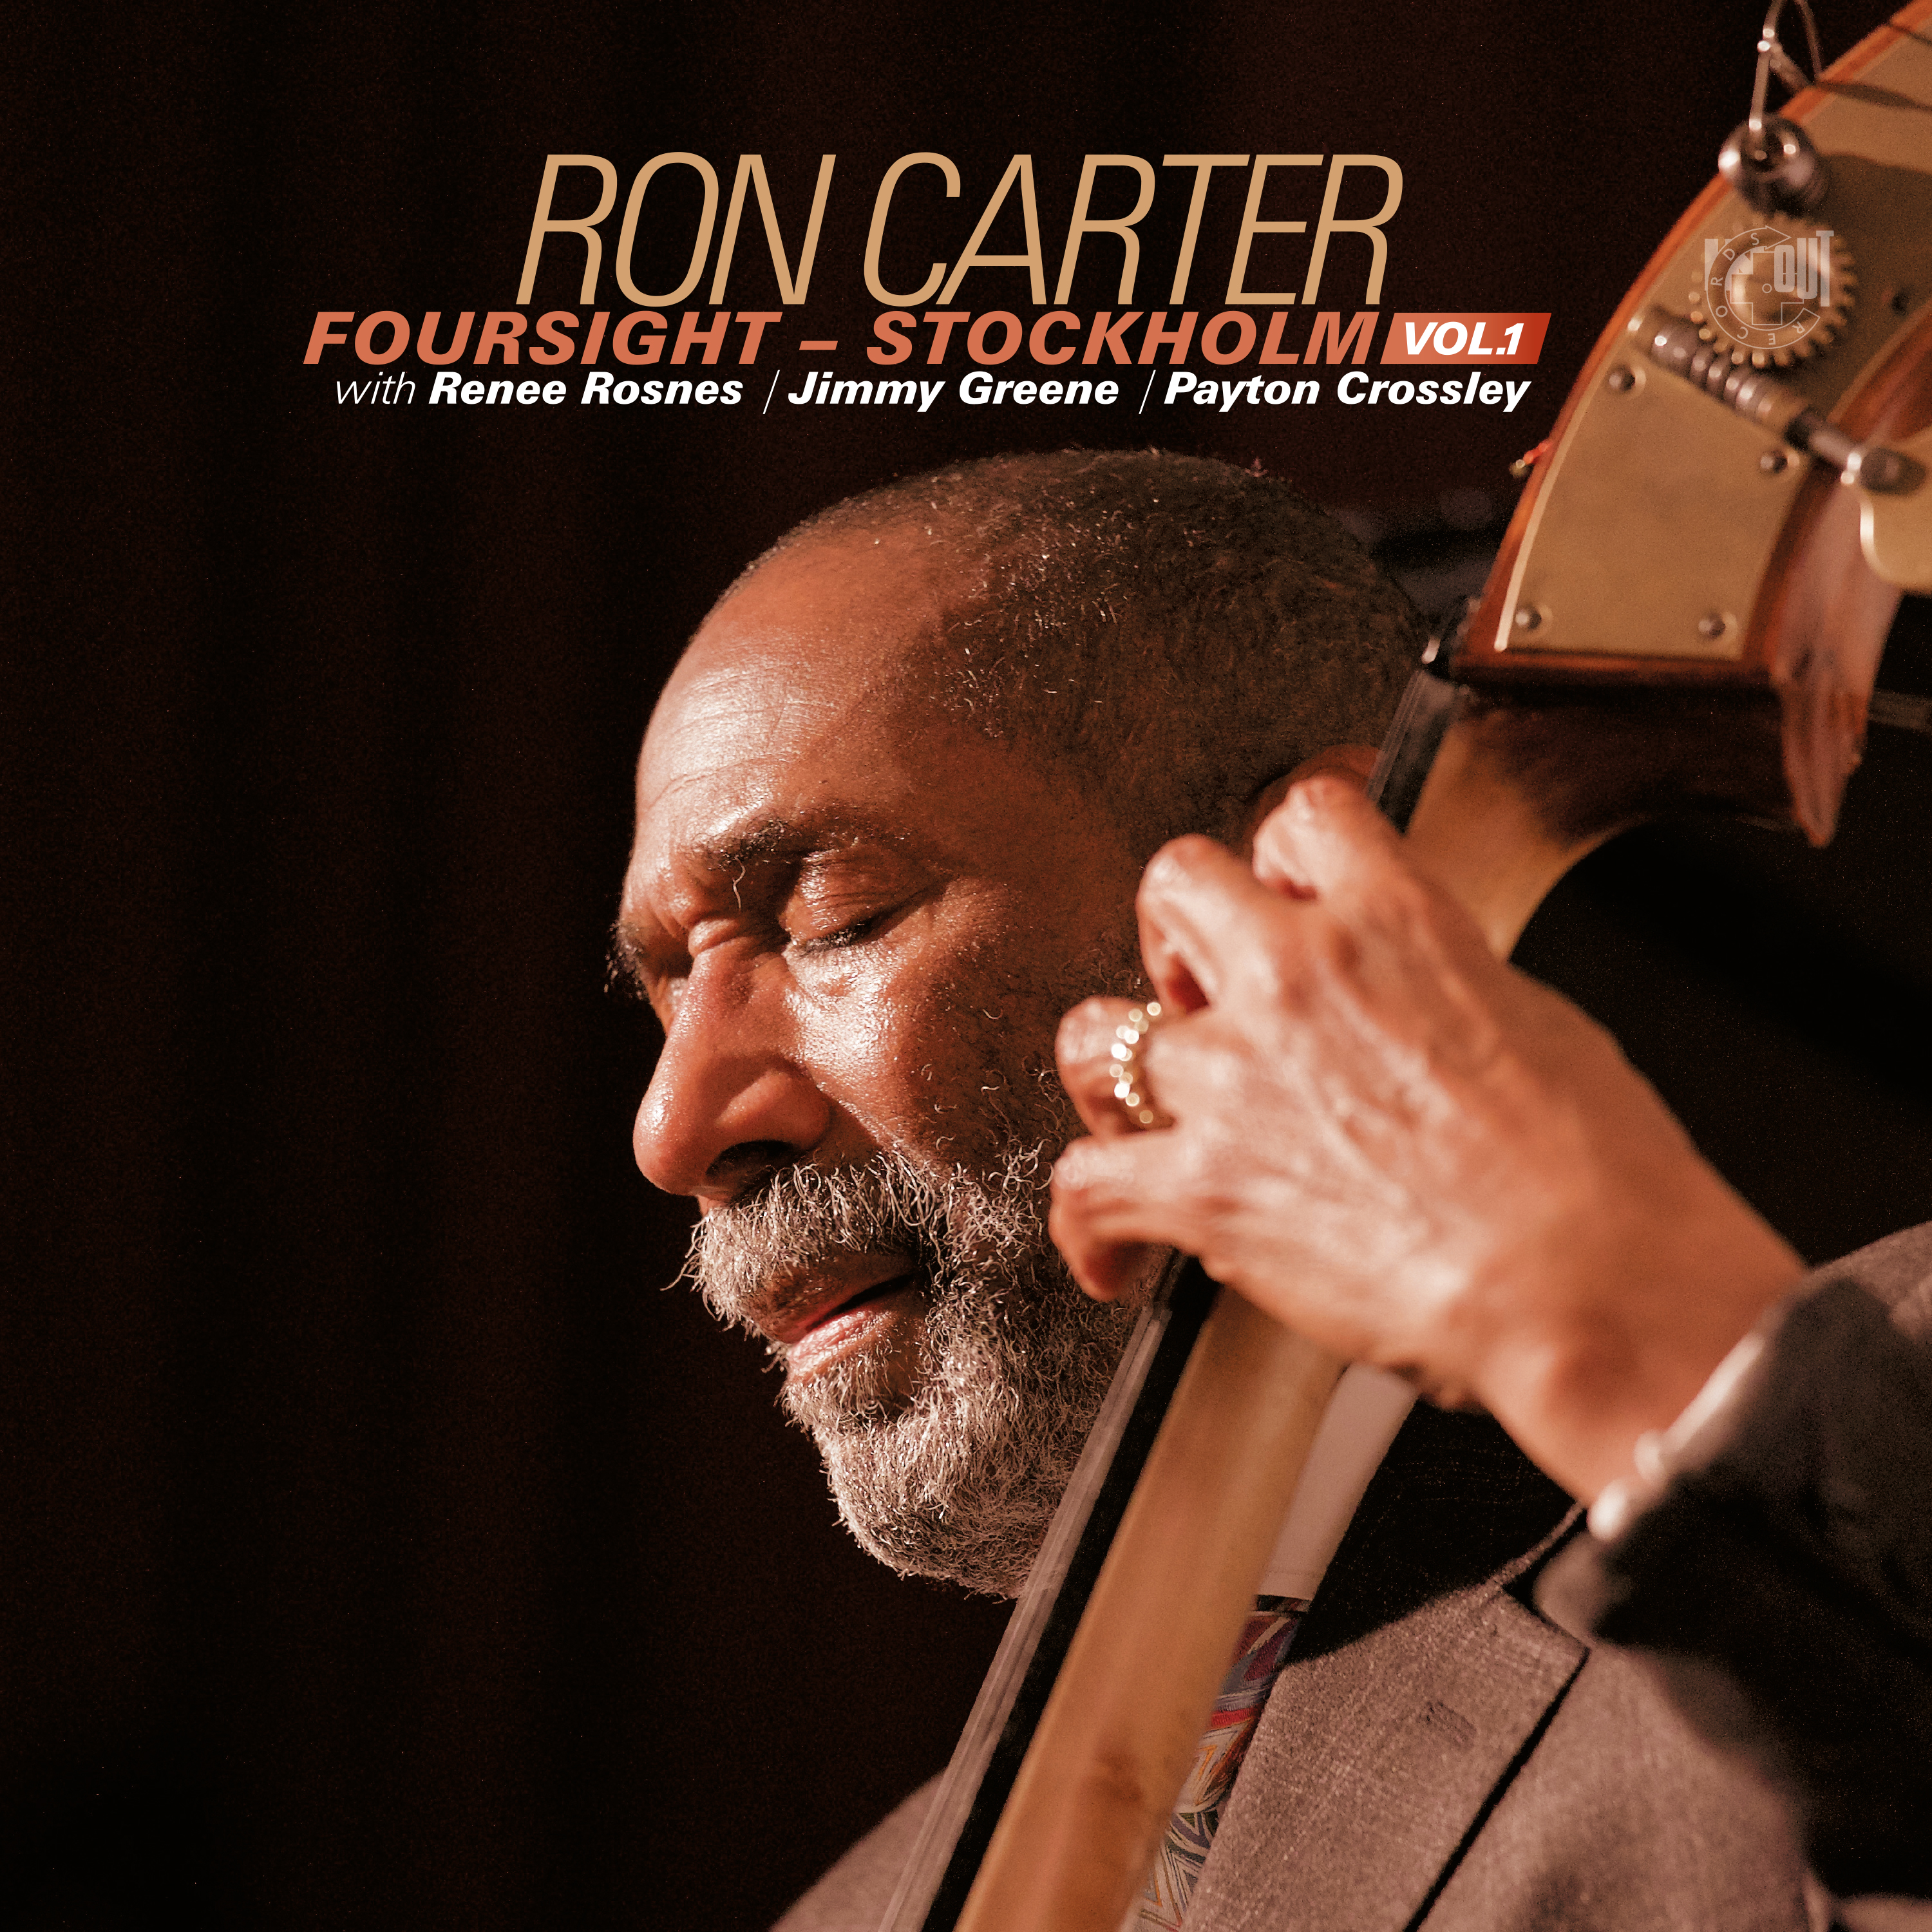 Ron Carter Foursight Stockholm Vol. 1 [CD] - IN+OUT Records GmbH